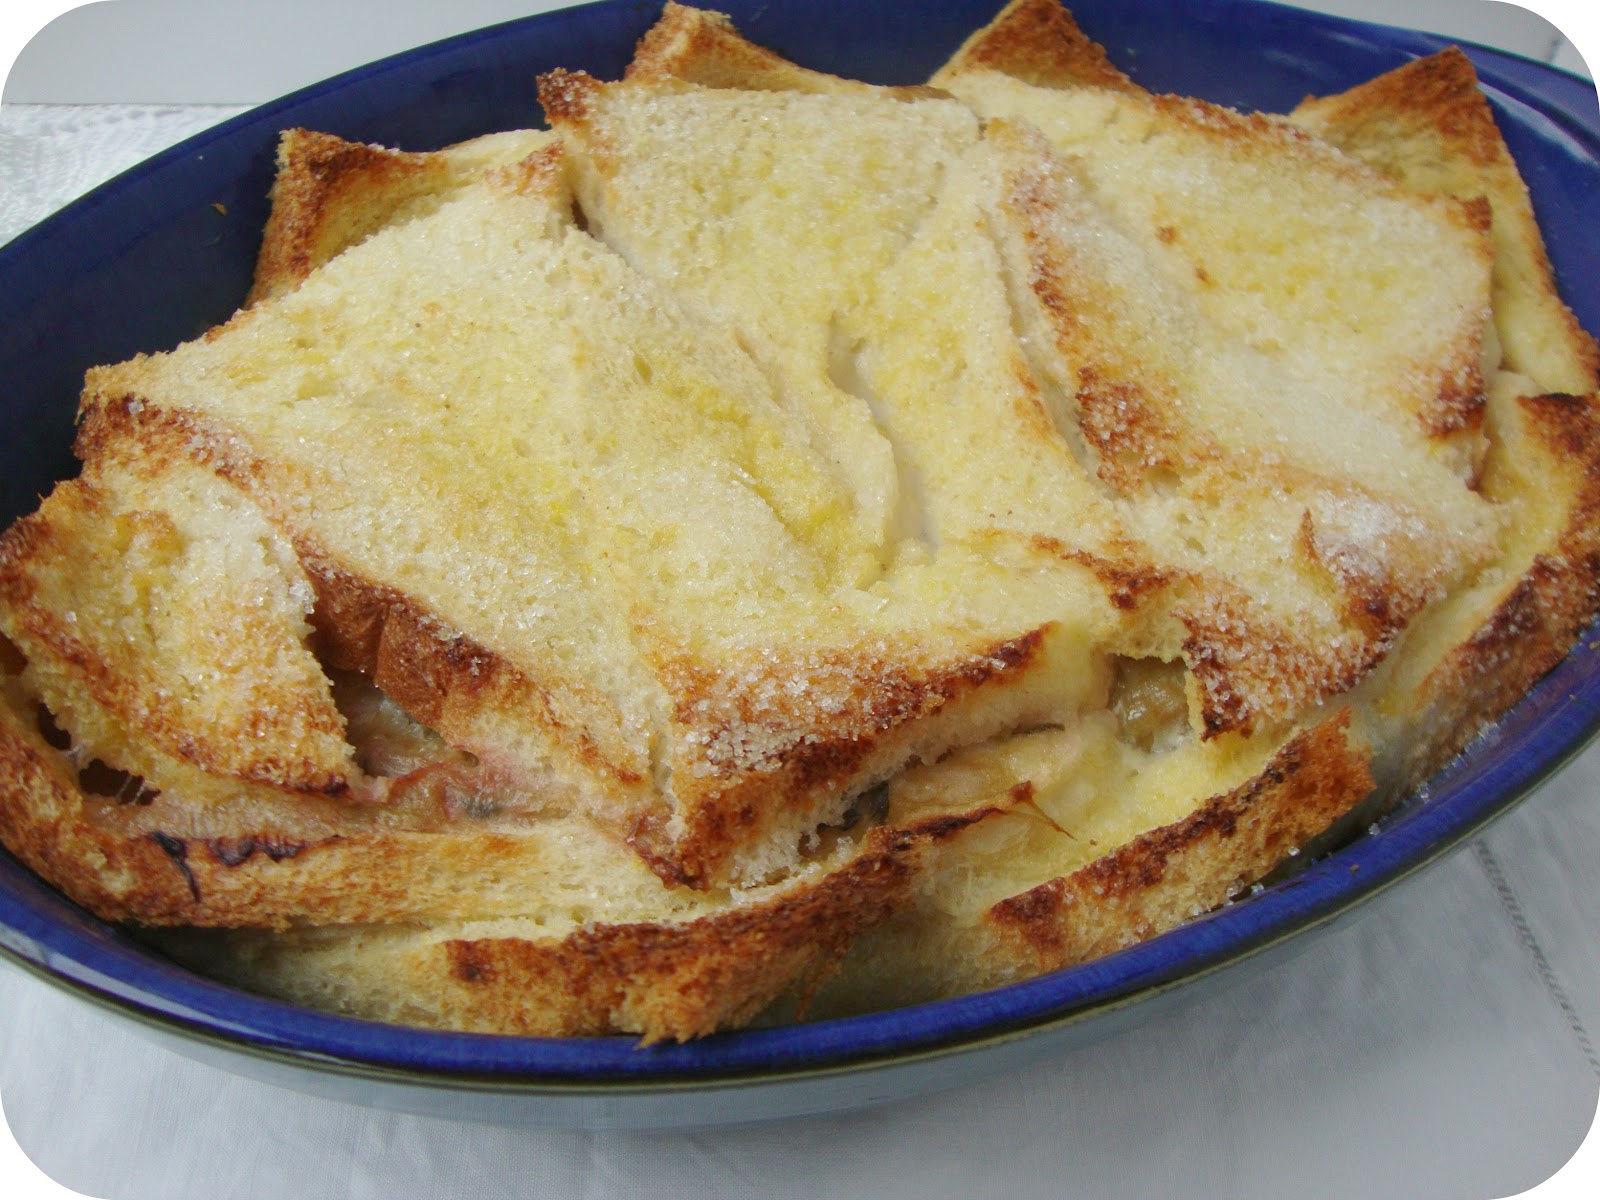 Miss Beatrix: Rhubarb Bread and Butter Pudding